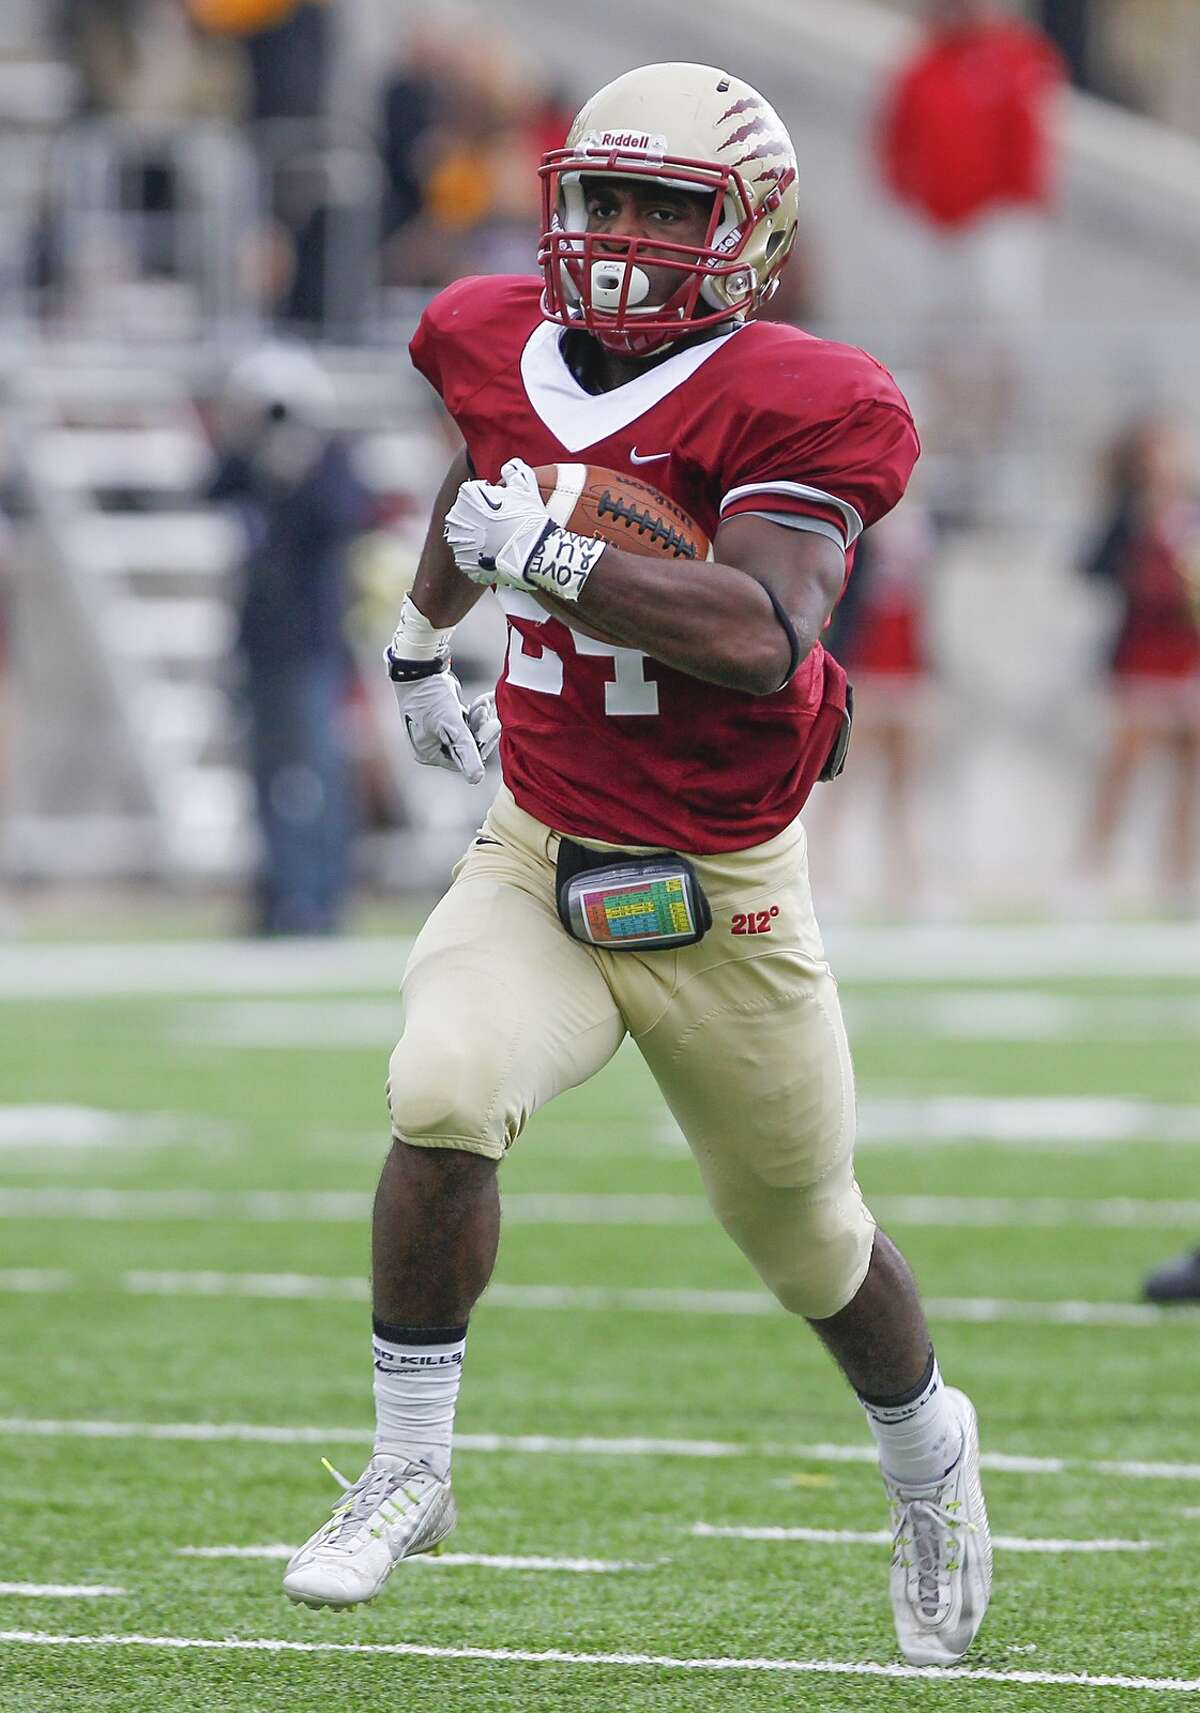 RJ Harmon of Cy Woods rushes for a Wildcat touchdown as they hosted Katy Taylor in the 6A Region III Playoffs at the Berry Center on November 22, 2014.